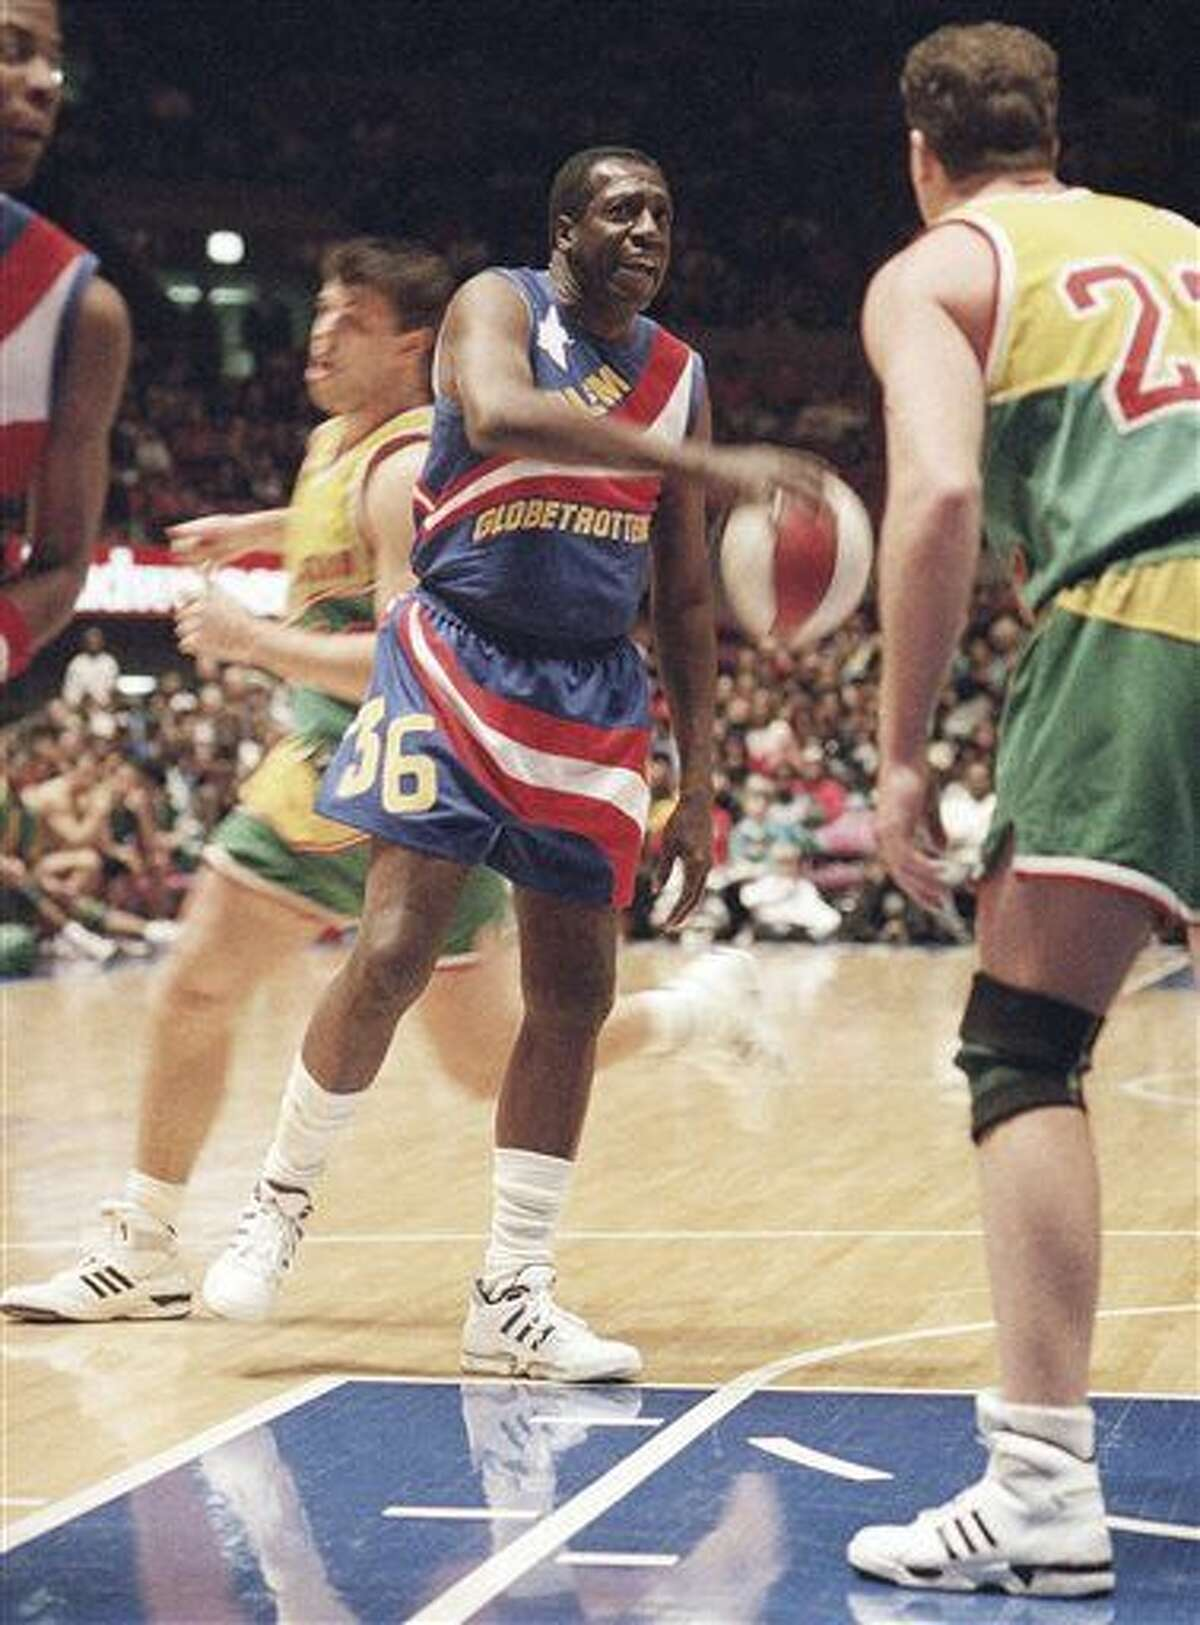 """FILE - In this Feb. 13, 1993, file photo, legendary Harlem Globetrotters' Meadowlark Lemon prepares to put the moves on Washington Generals' Tim Burkhart during their basketball game at Madison Square Garden in New York. Lemon, known as the Globetrotters' """"clown prince"""" of basketball, died Sunday, Dec. 27, 2015, in Scottsdale, Ariz. He was 83. (AP Photo/Bebeto Matthews, File)"""